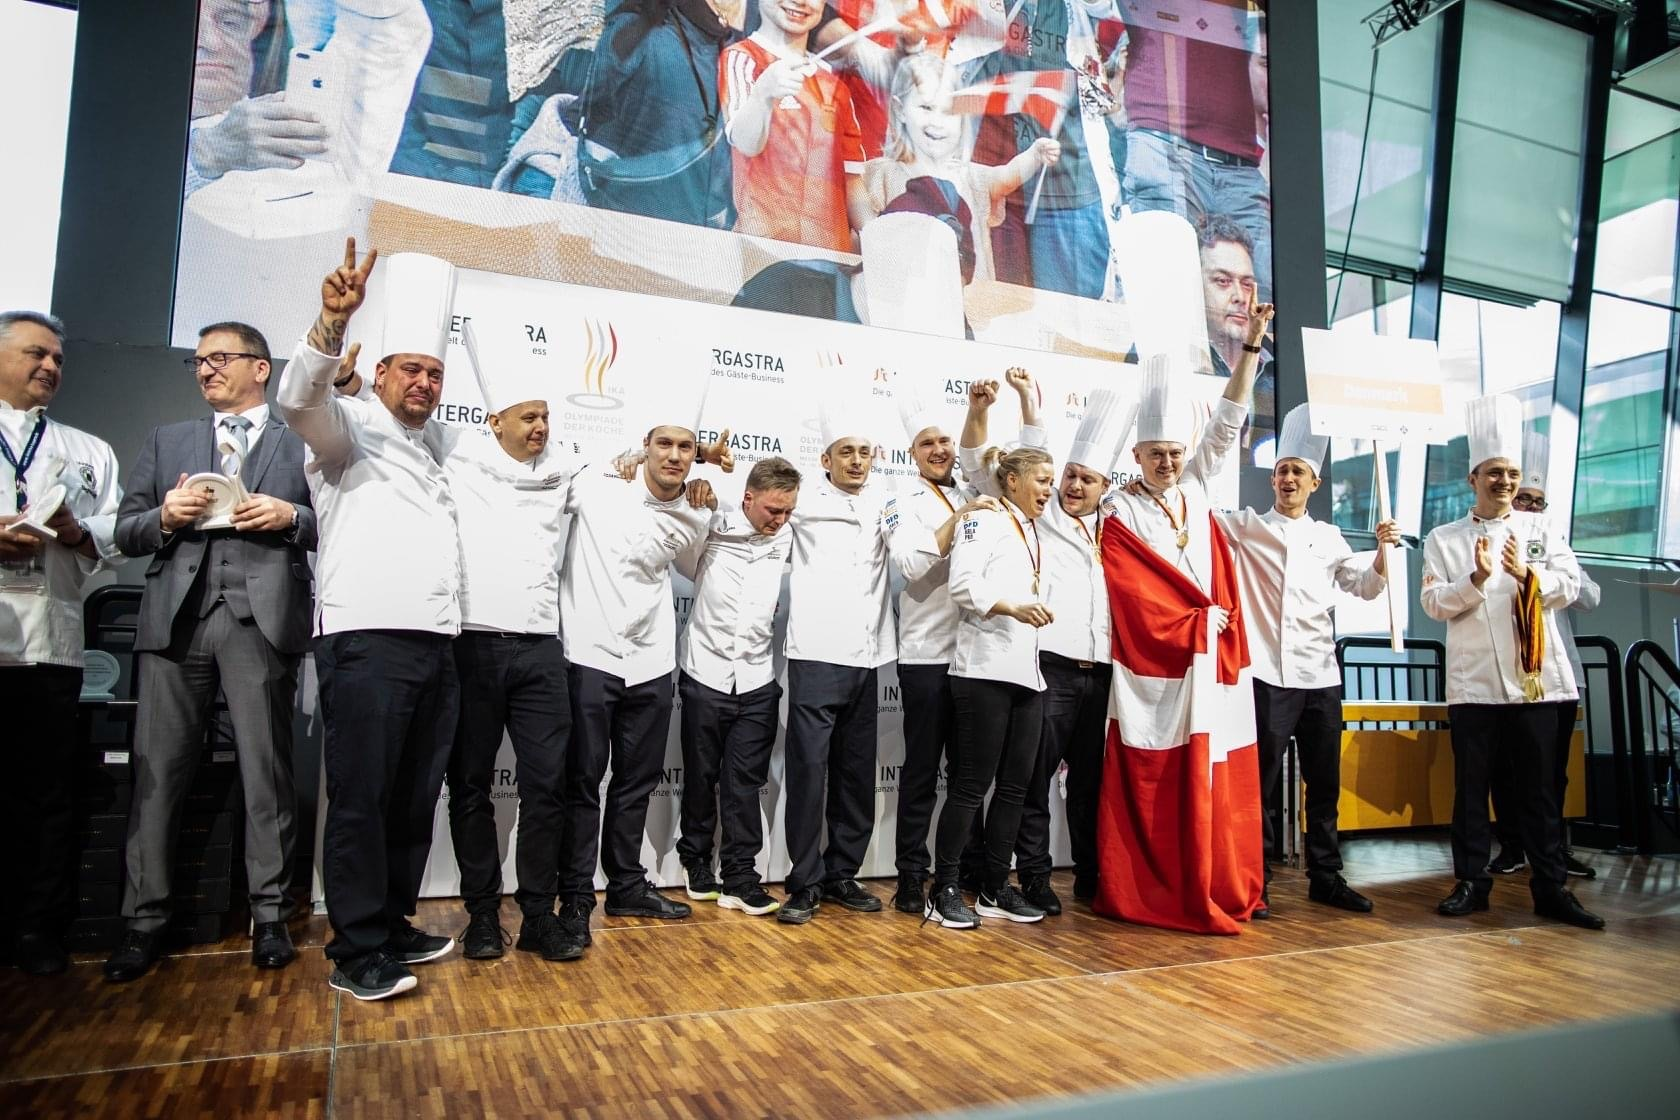 Kokkeforeningen Danmark / Culinary team of Denmark and Chef's Association